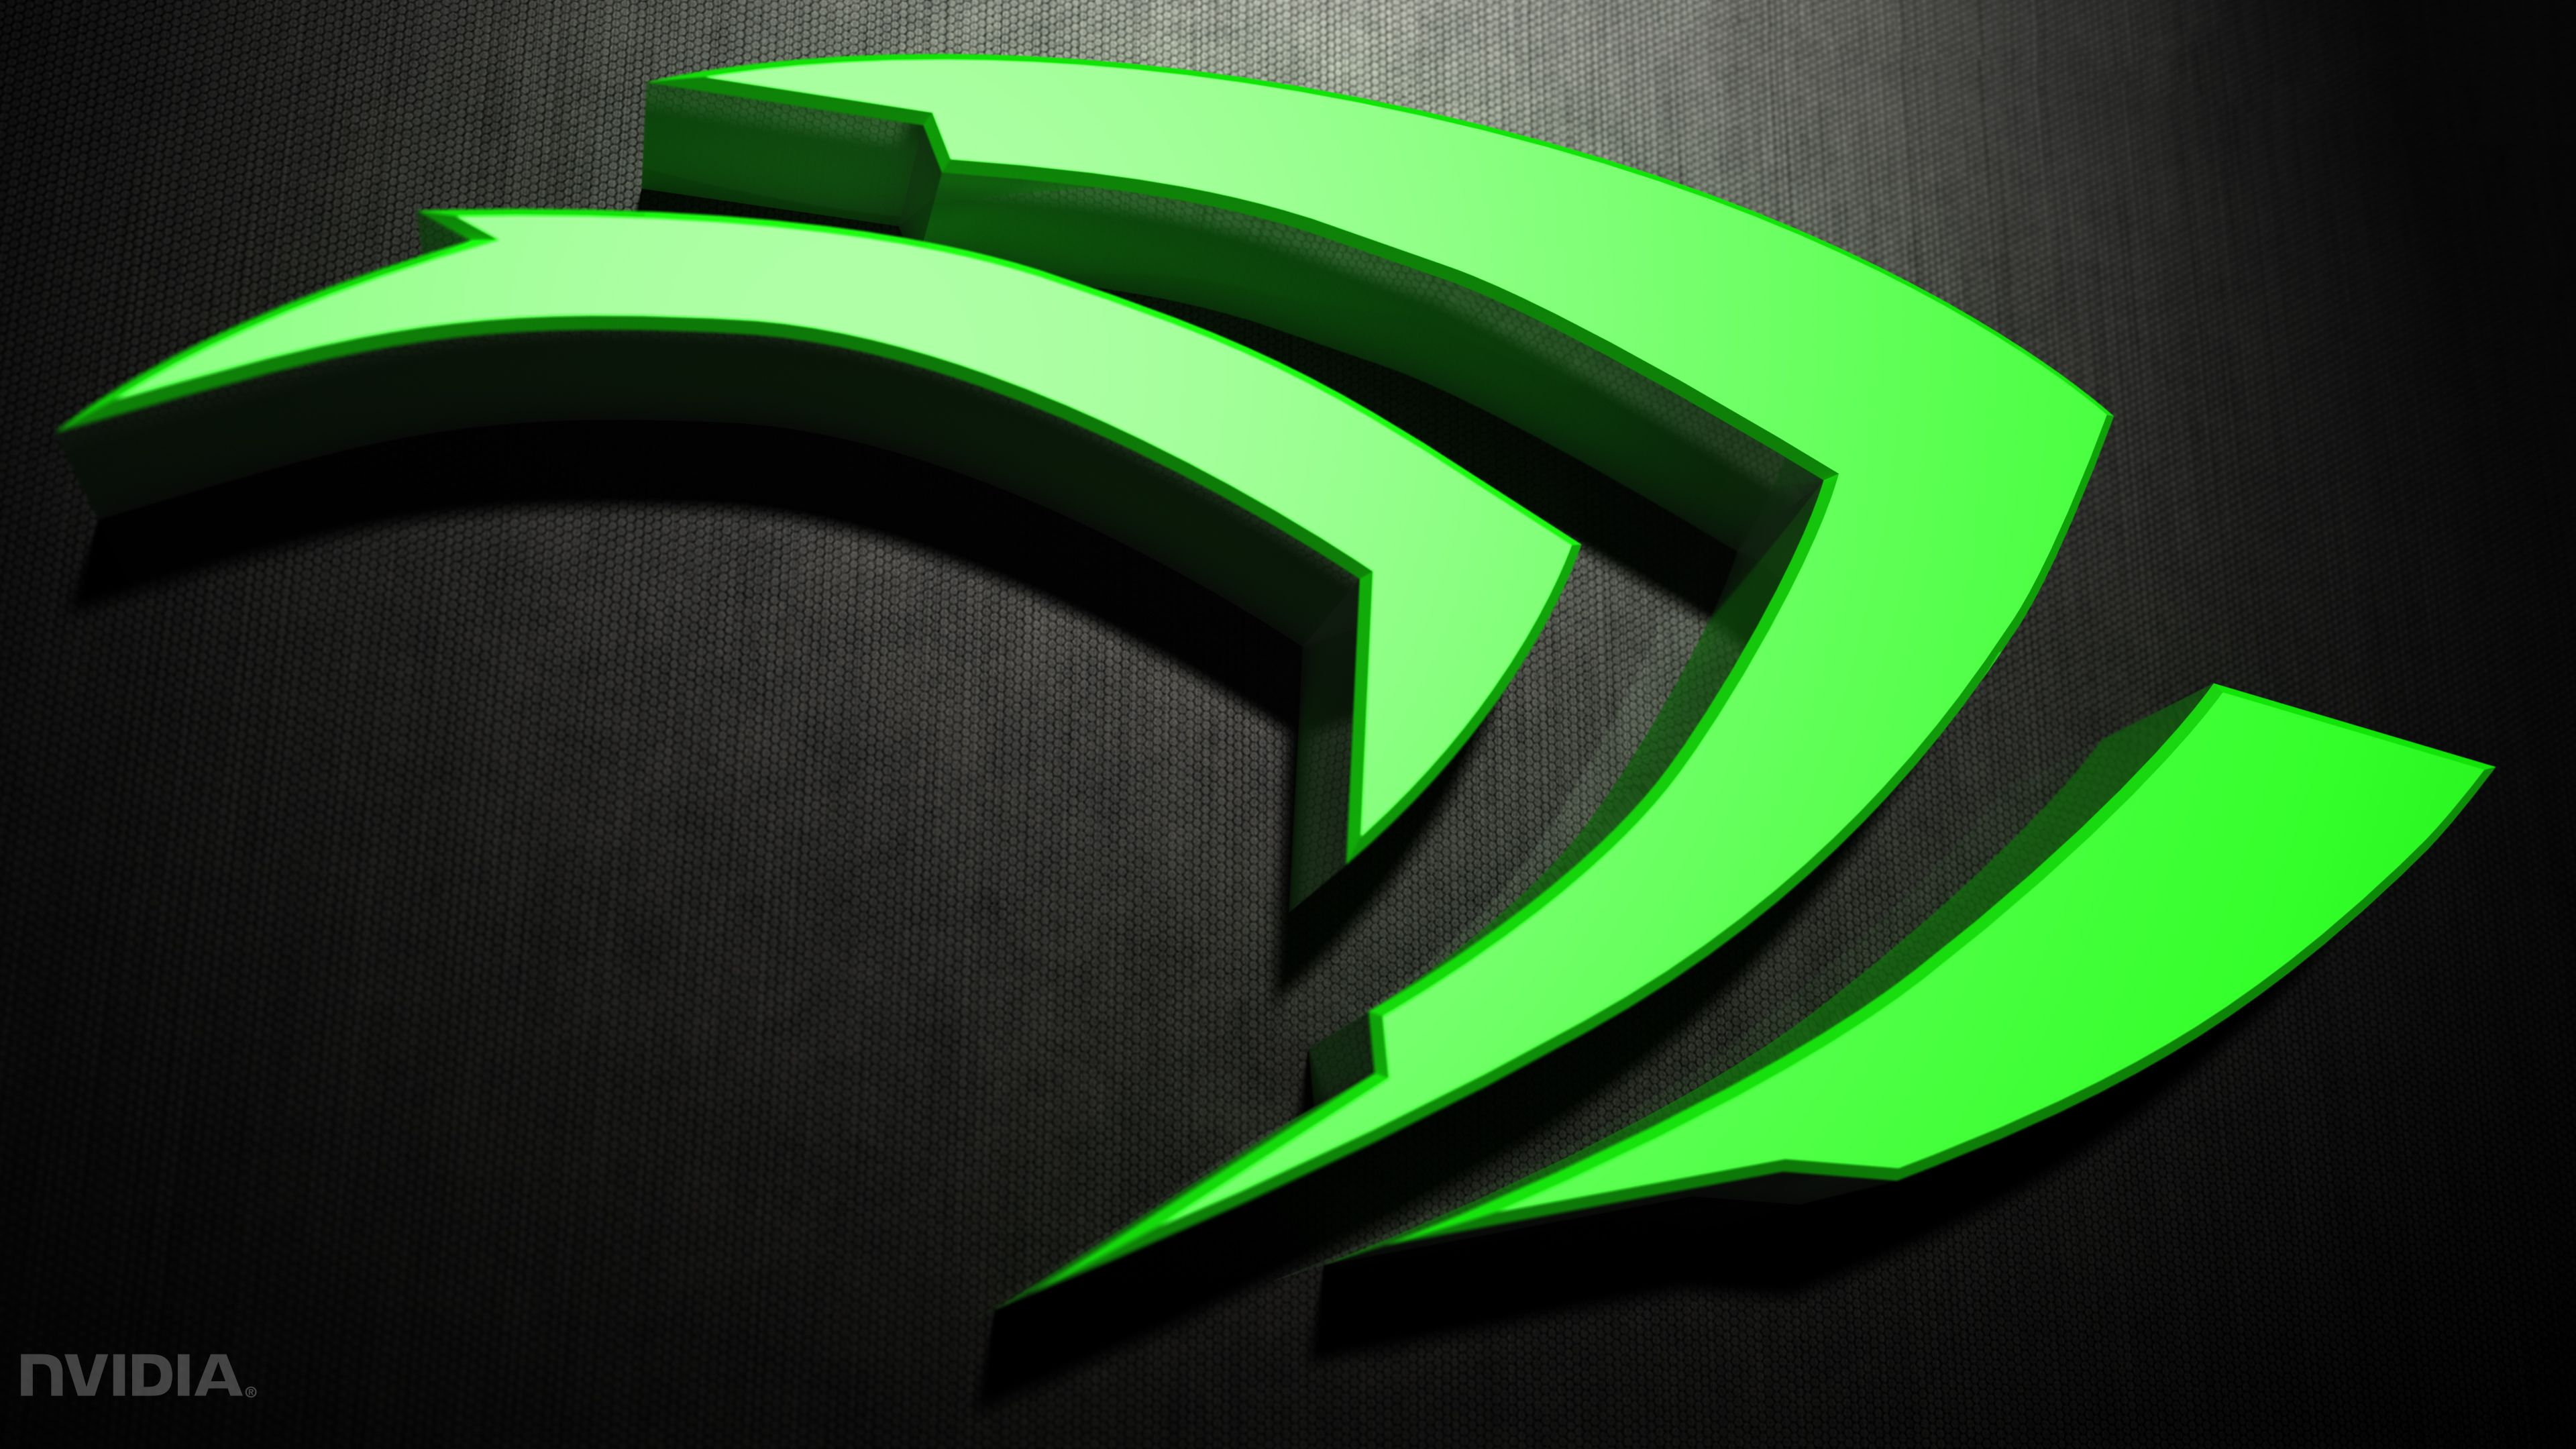 3840x2160 Nvidia simple 3D 4k Ultra HD Wallpaper and Background Image ...